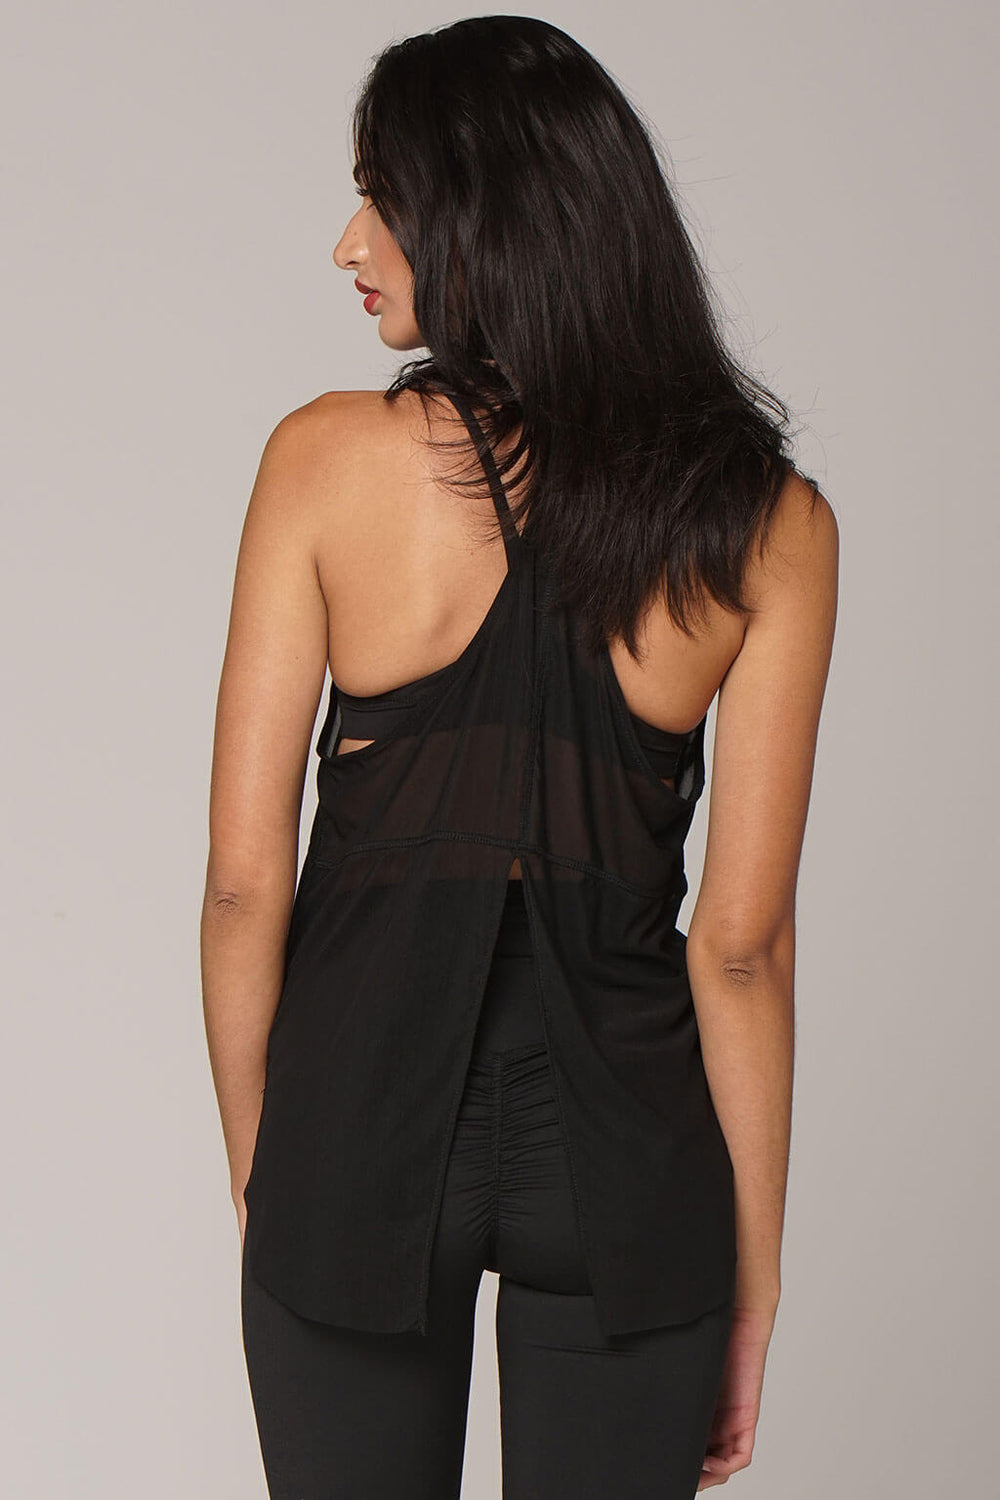 Back view of yogavated muse mesh tank top in black with slit from bottom up half way in center back